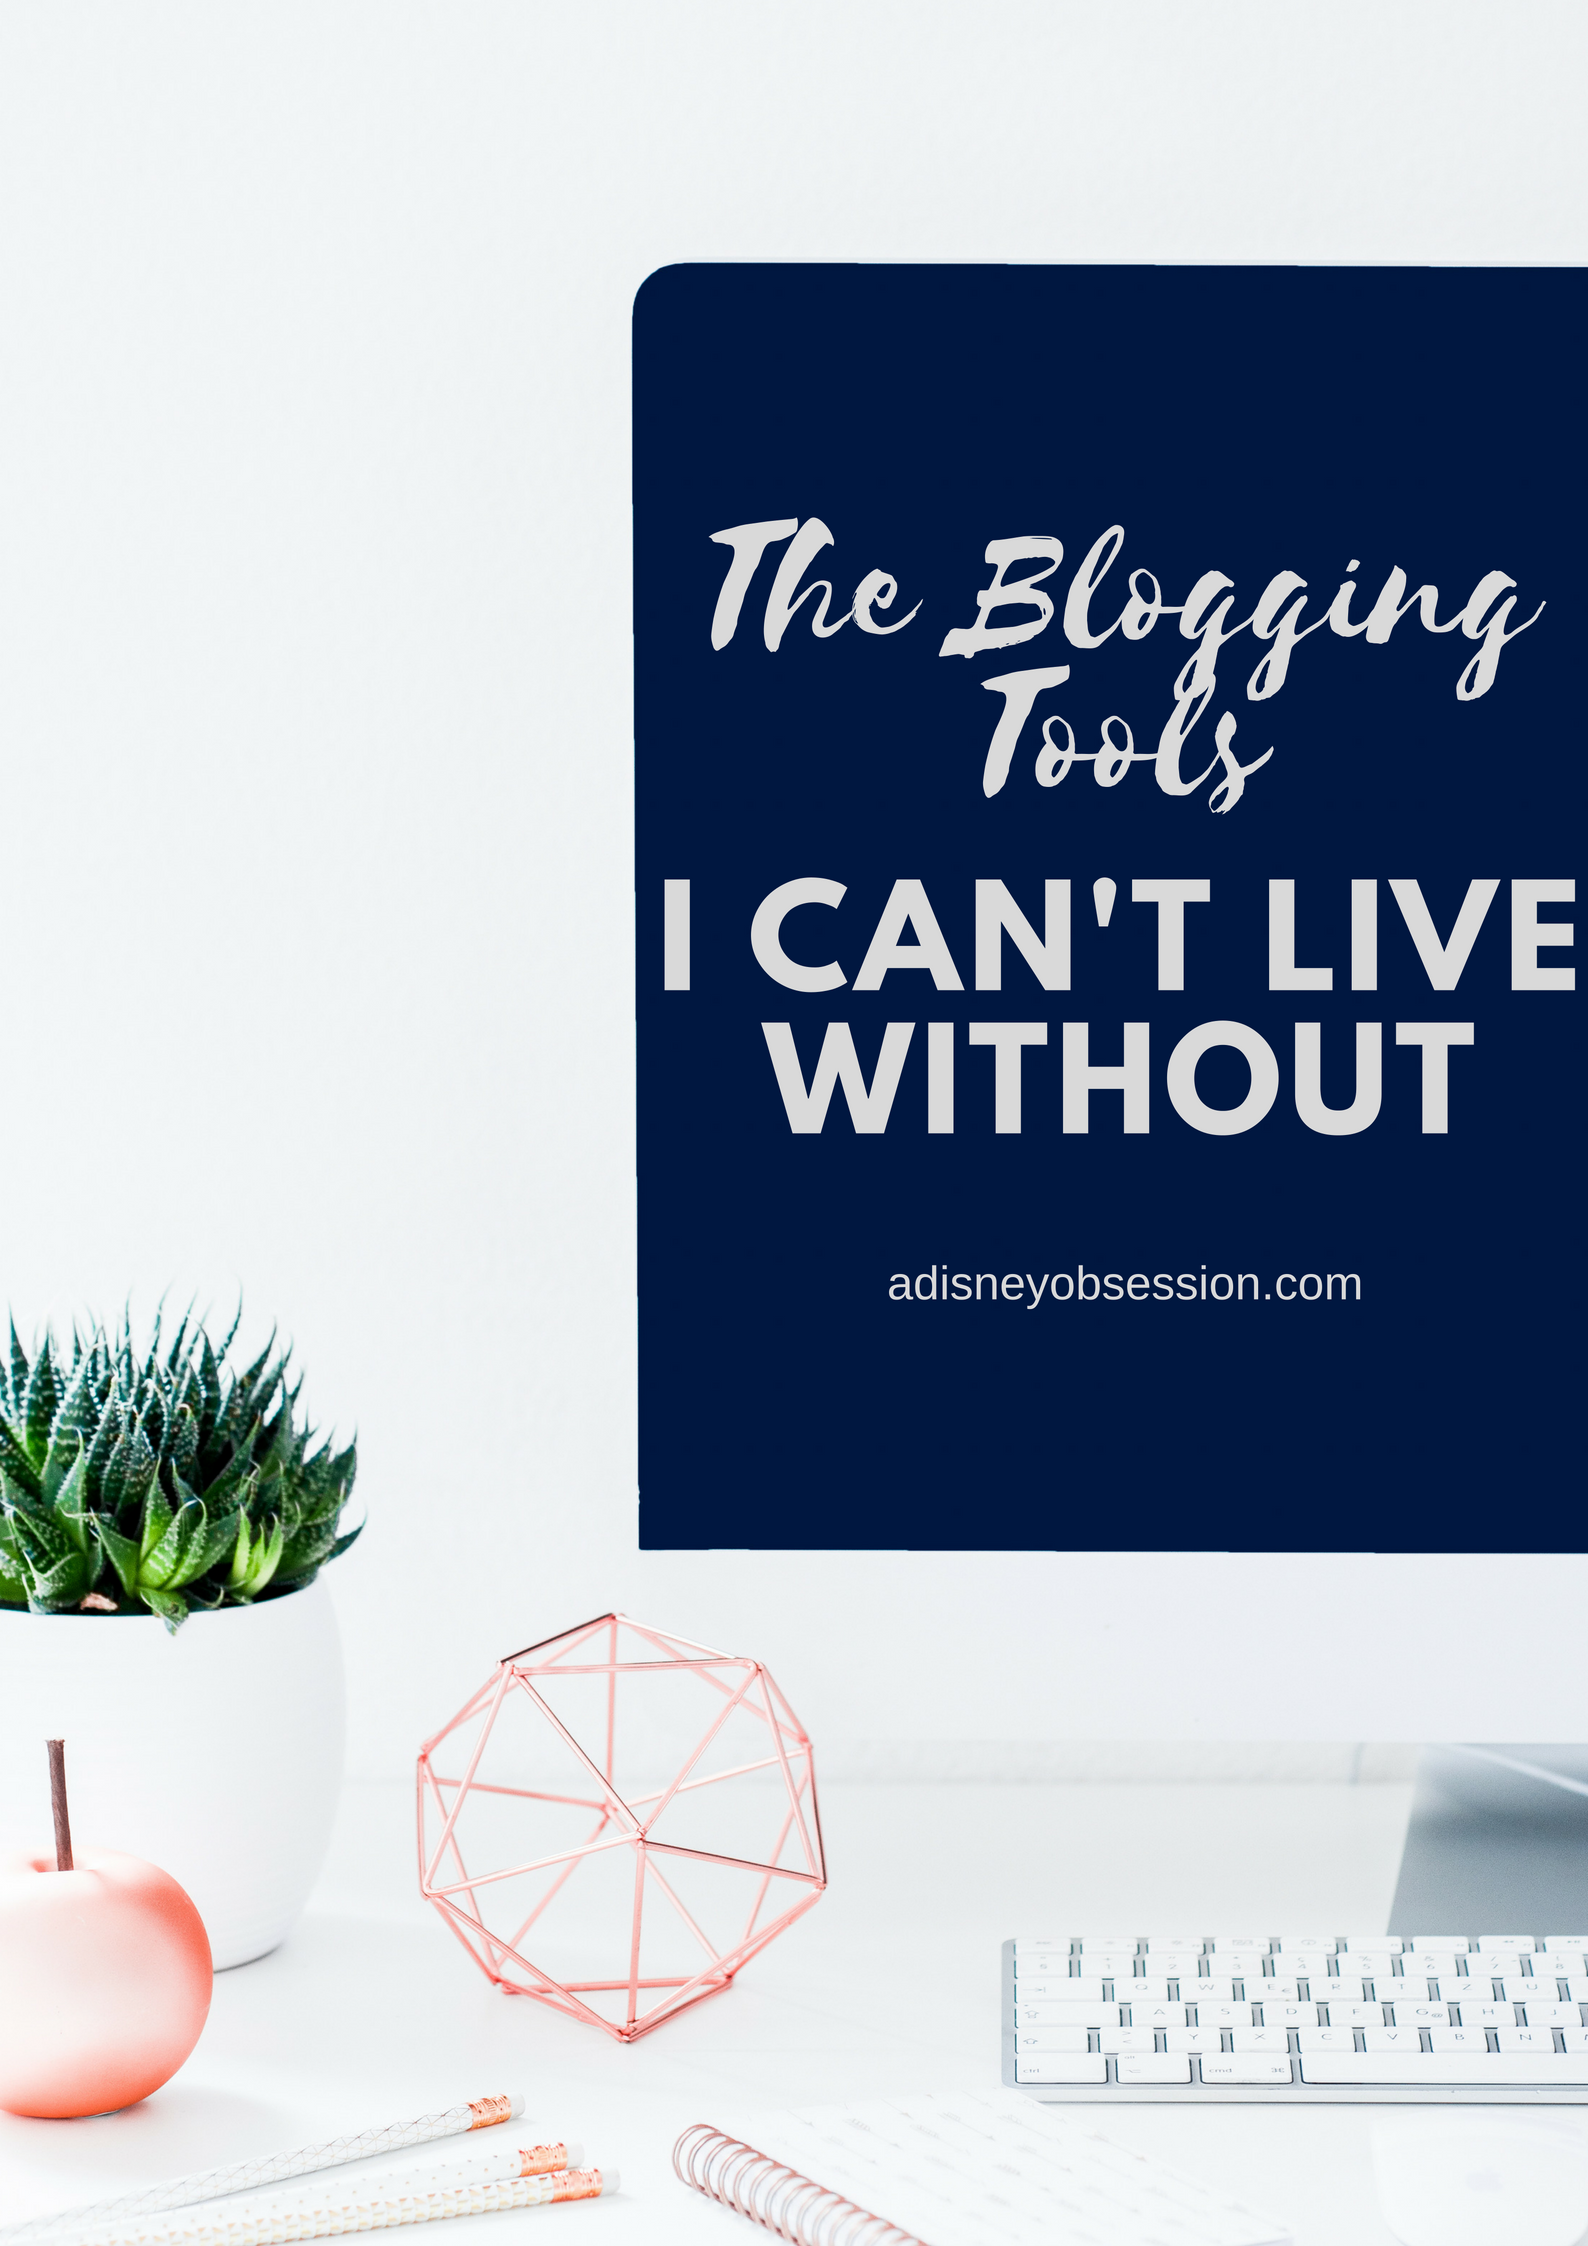 The Blogging Tool I can't live without